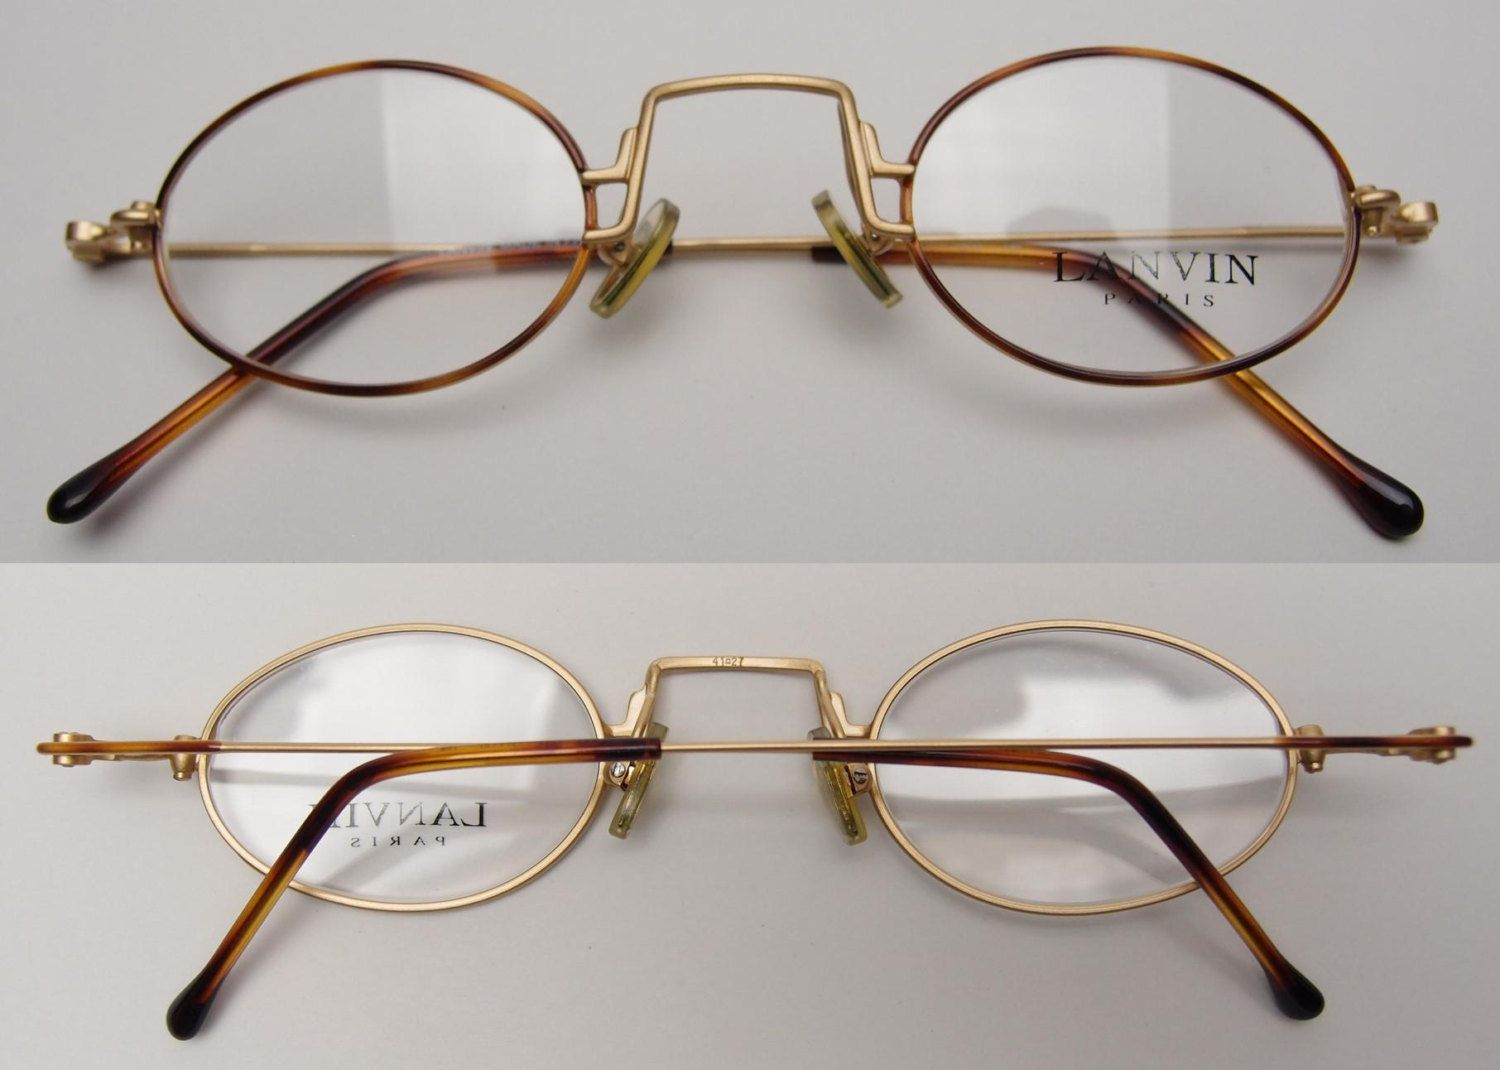 ad947059233d This is a NOS(new old stock) pair of vintage Lanvin sunglasses eyeglasses  frames. They are in excellent vintage condition. 100% authentic.